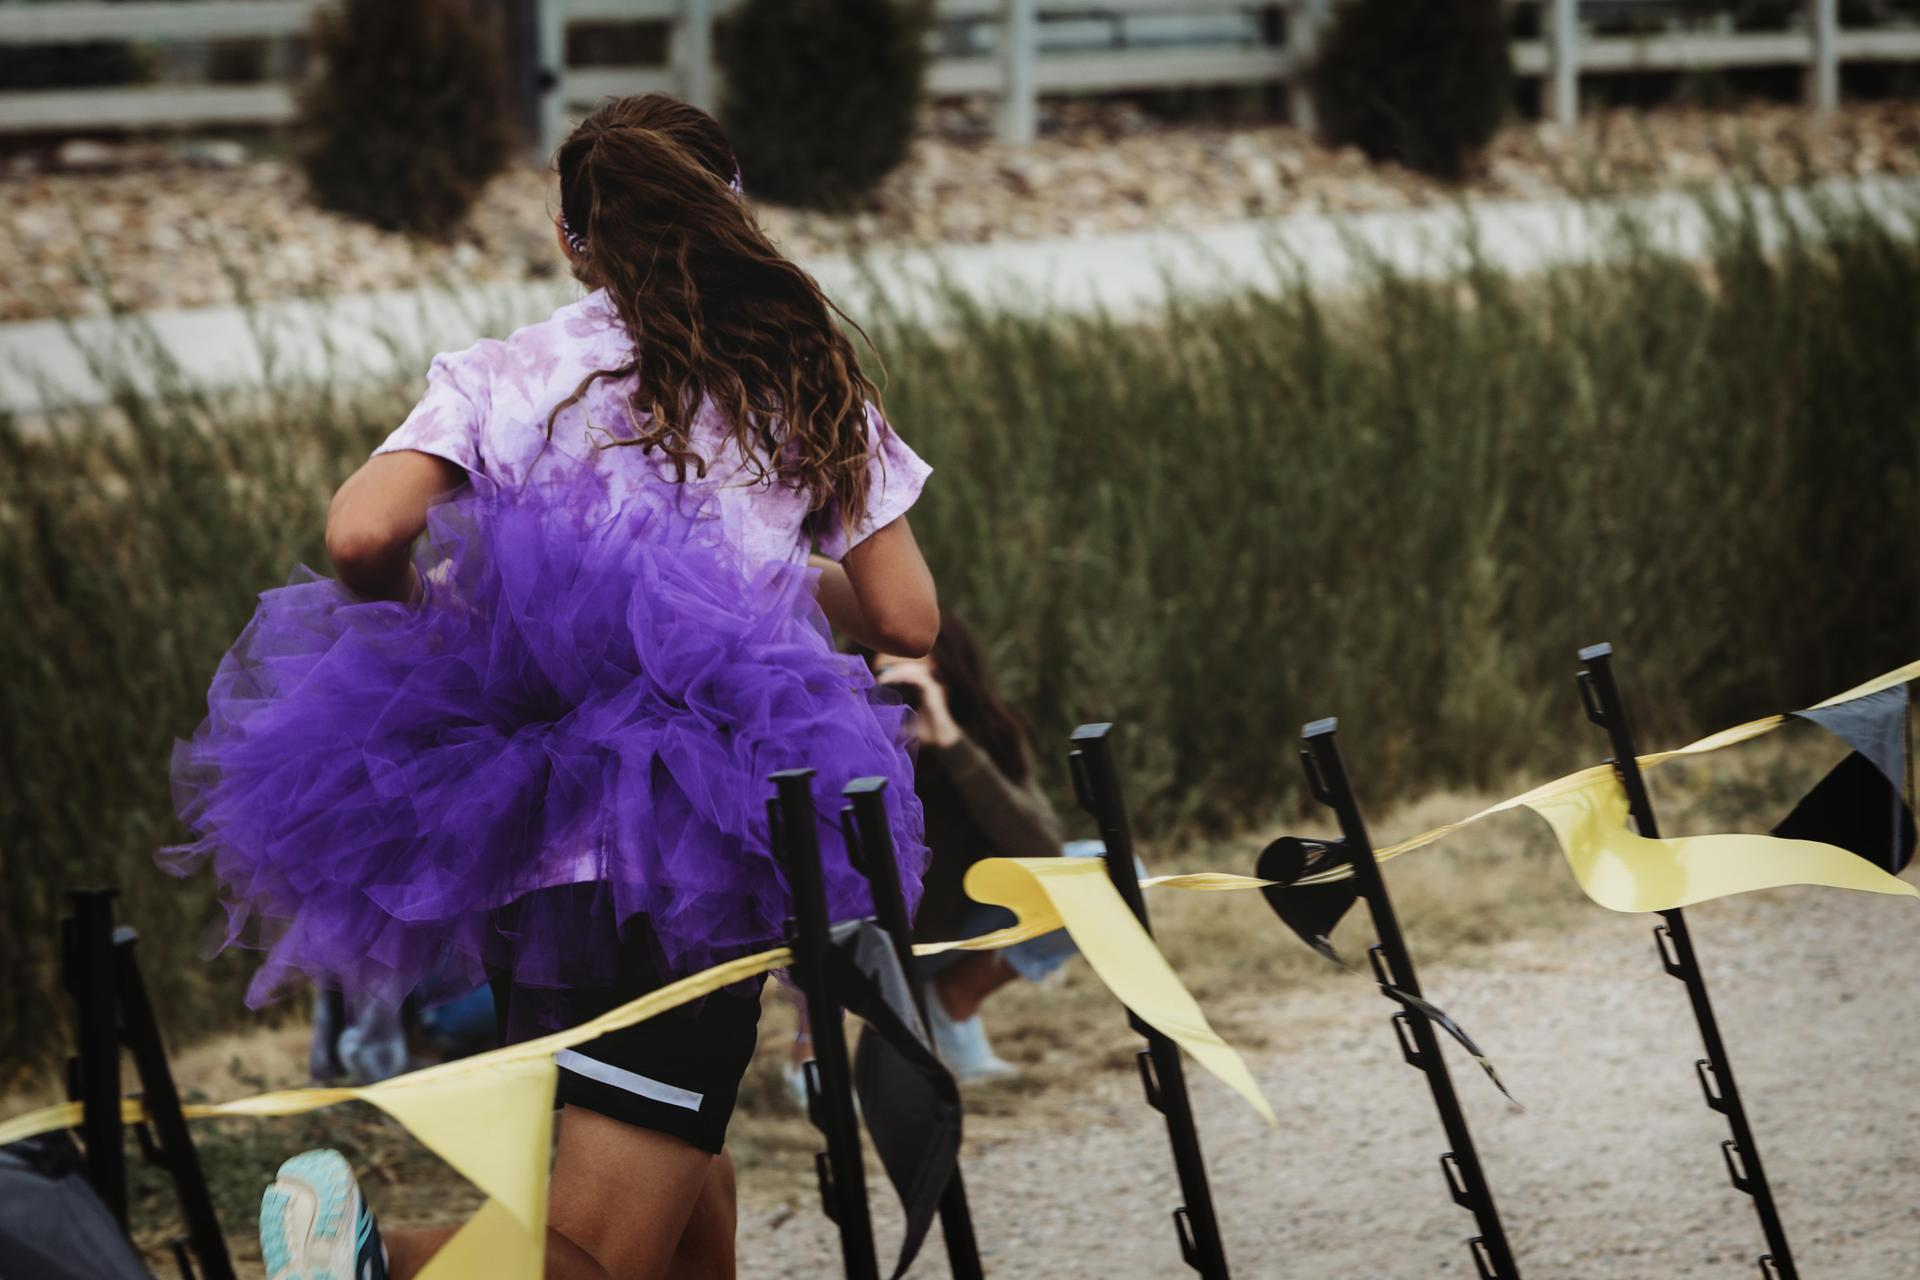 Girl in purple tute running to finish line